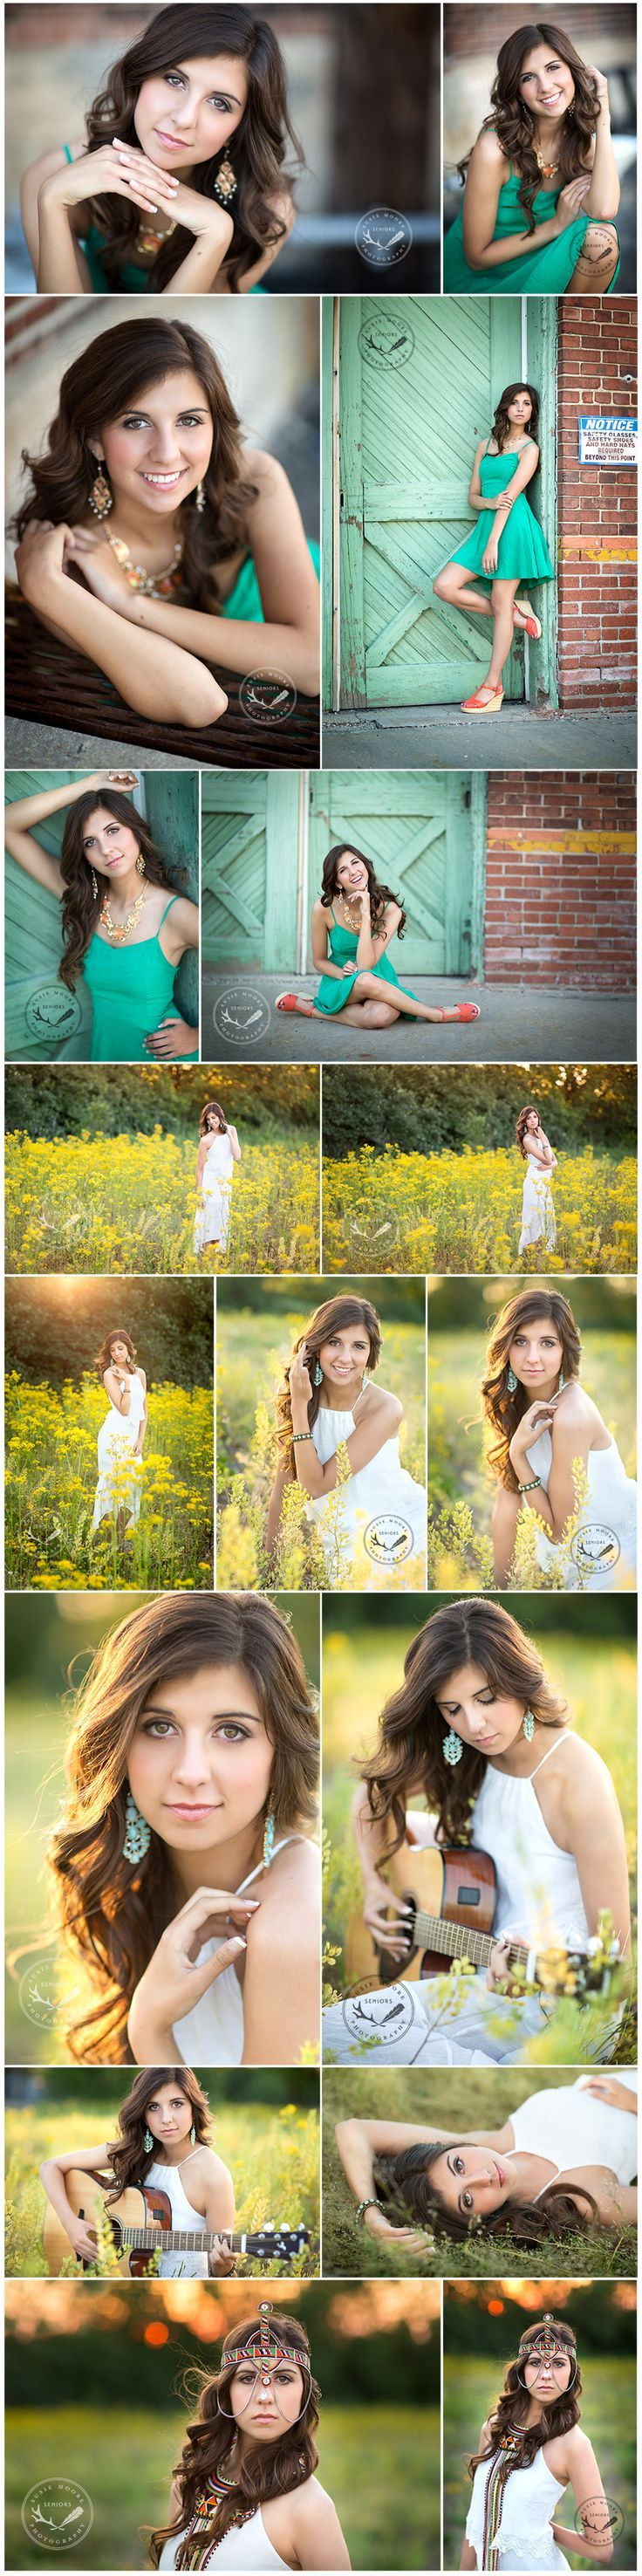 Stephanie   Chicago Christian High School   Class of 2015   Indianapolis Senior Pictures